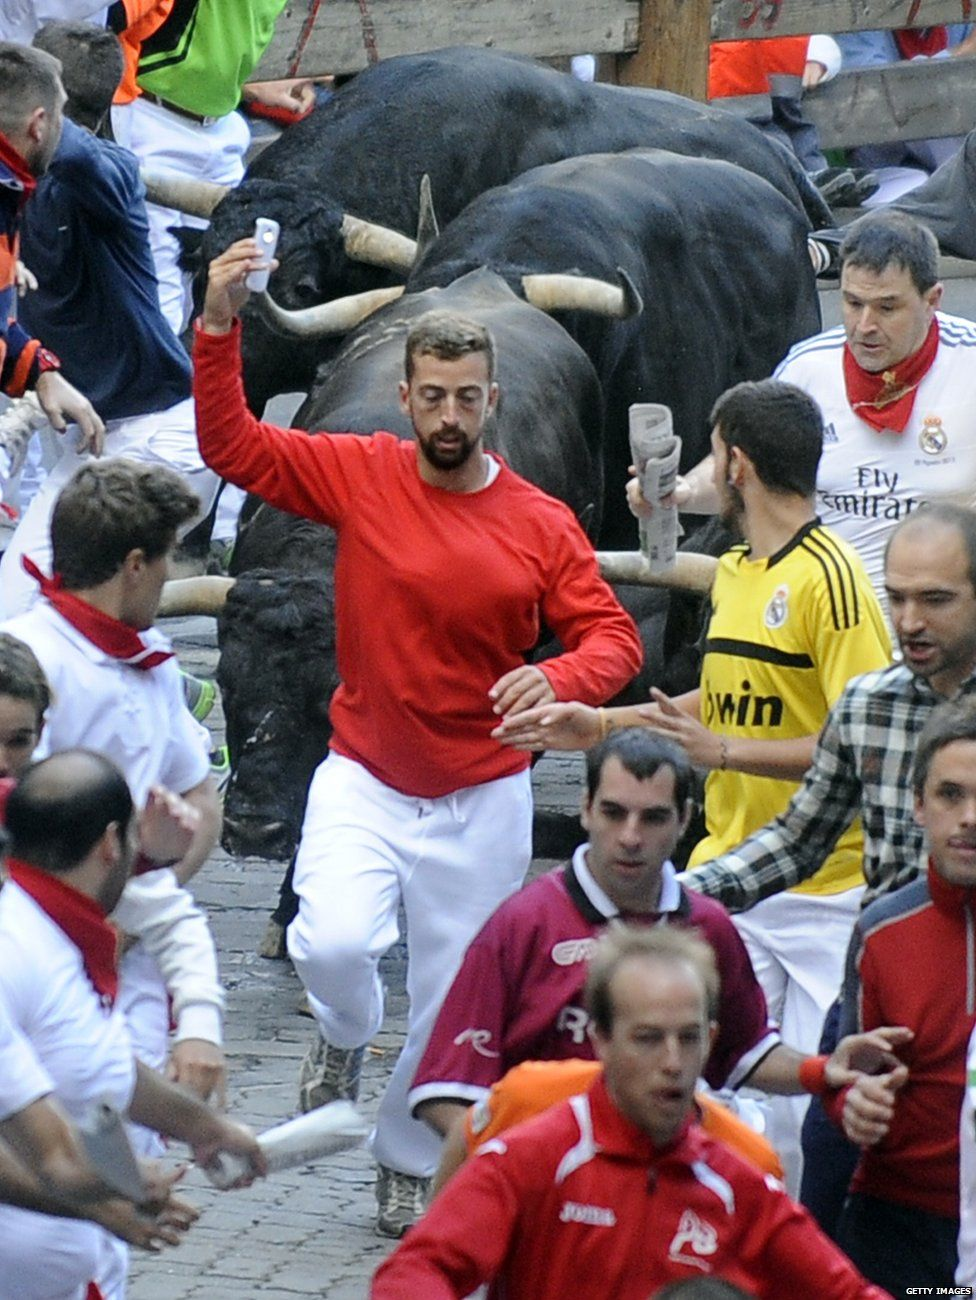 People at the running of the bulls in Pamplona, Spain, in 2014